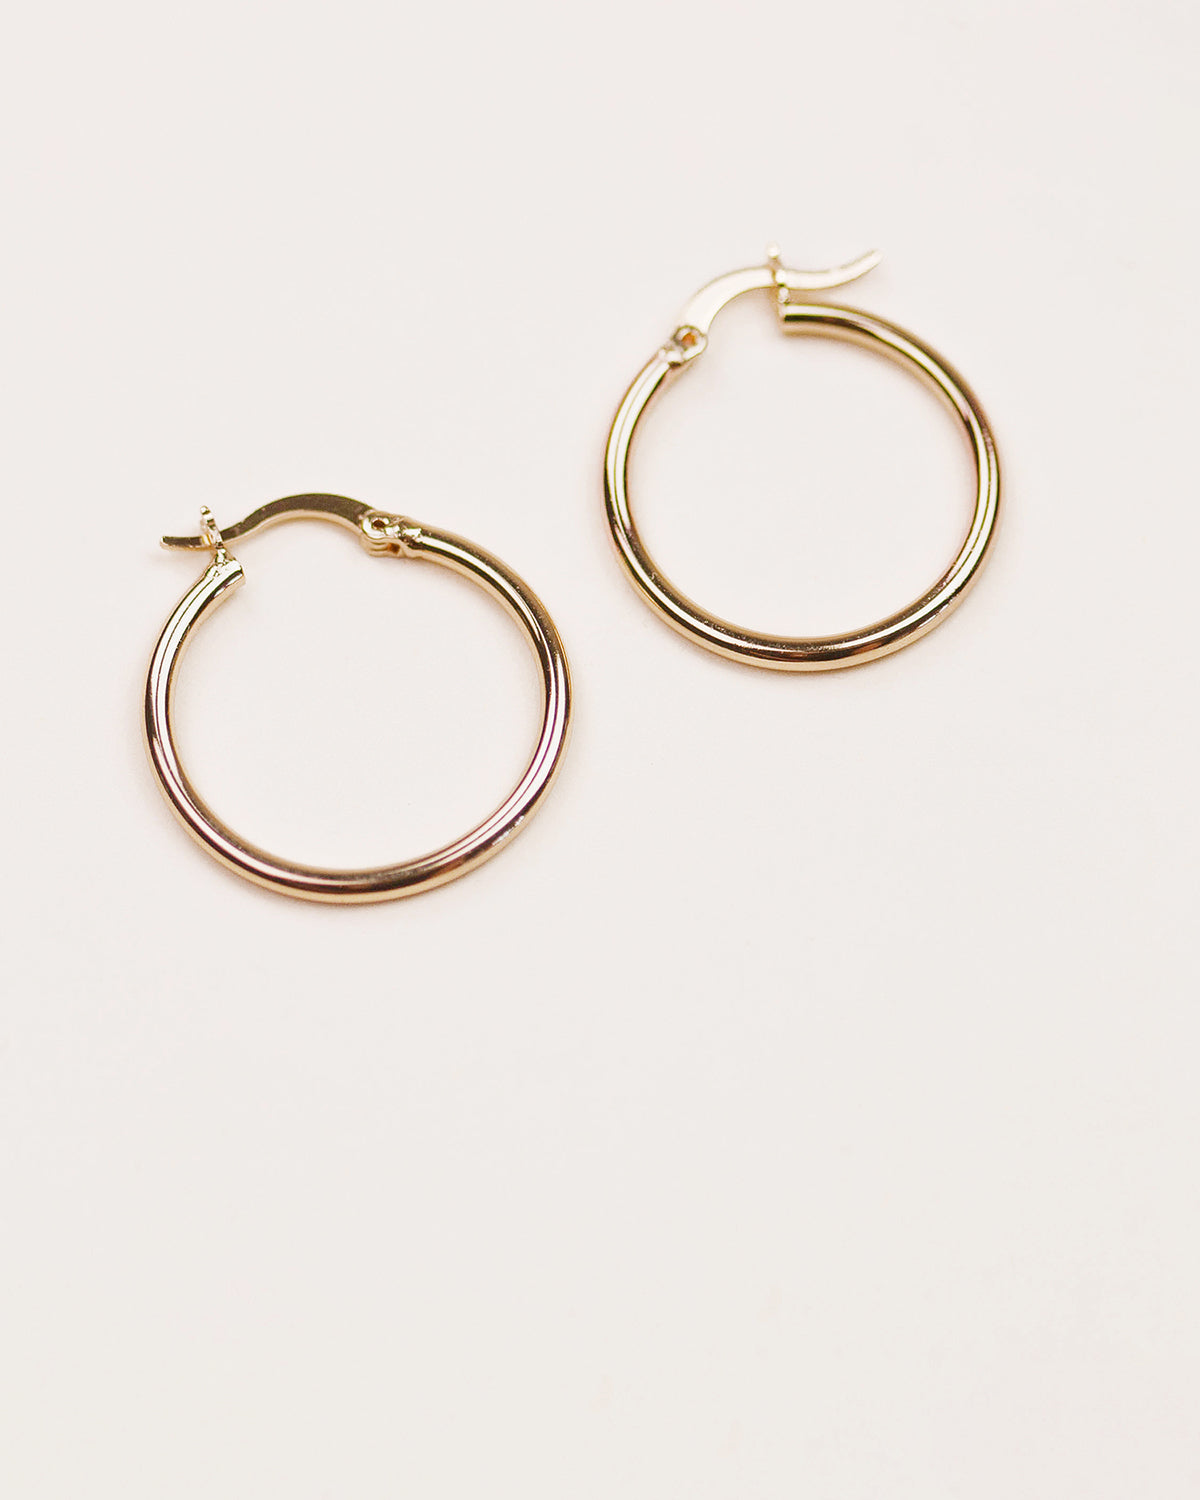 Hilda Simple Hoop Earrings - Maxi